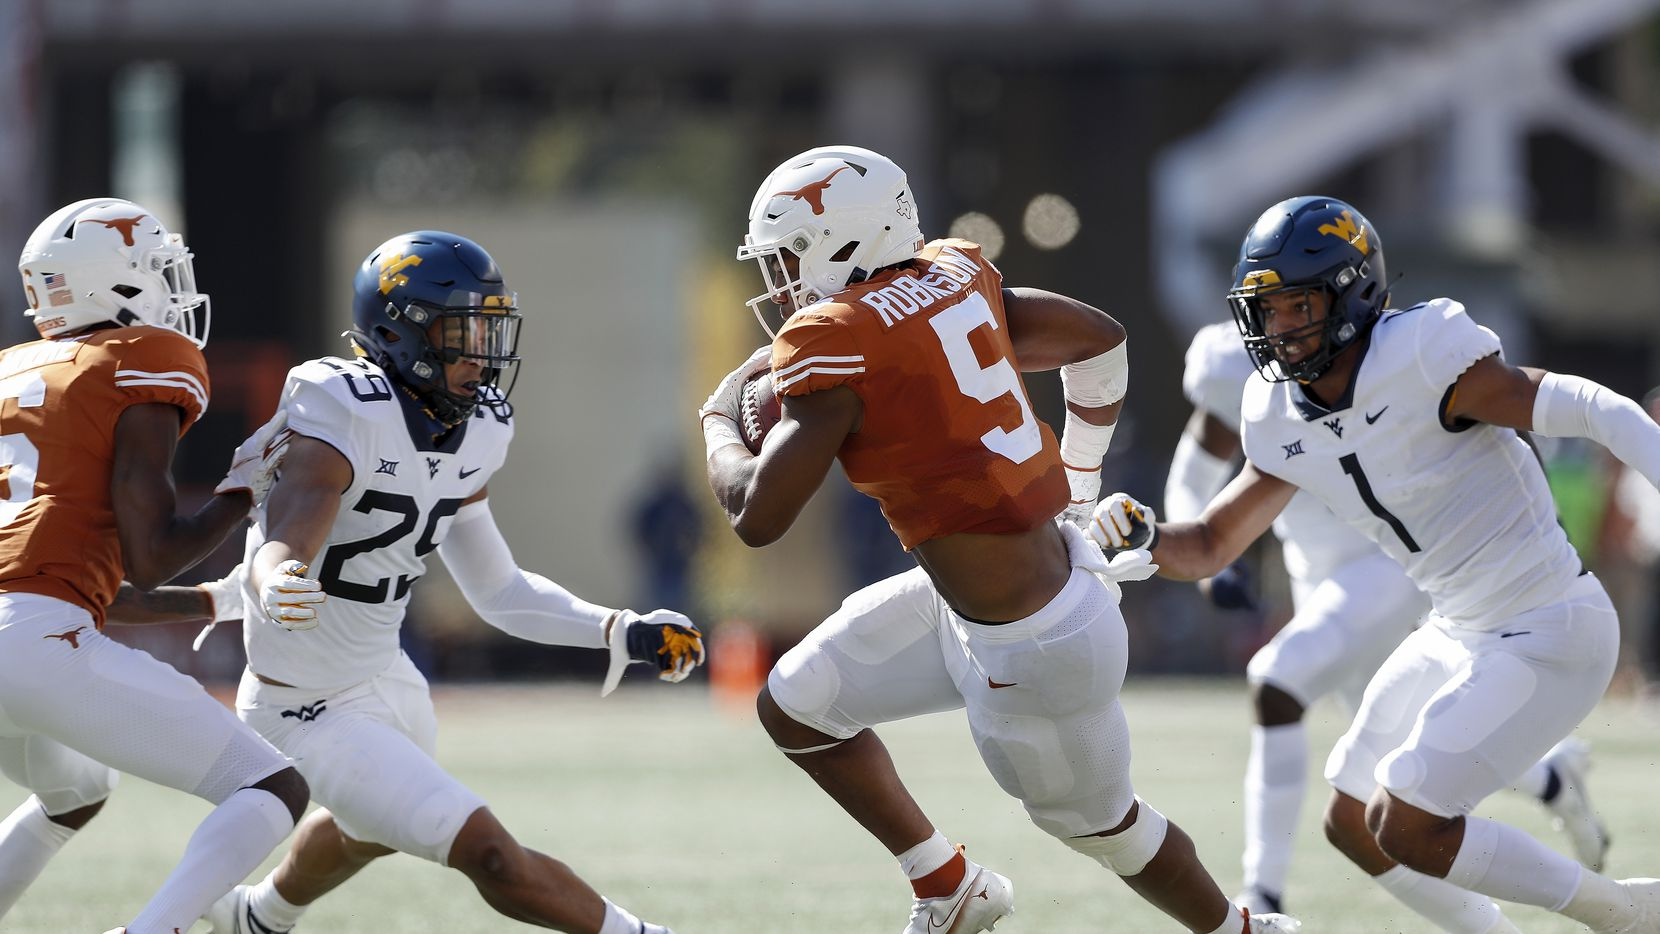 Texas running back Bijan Robinson (5) runs the ball while defended by West Virginia linebacker Tony Fields II (1) and safety Sean Mahone (29) in the first quarter at Darrell K Royal-Texas Memorial Stadium on Nov. 7, 2020 in Austin. (Photo by Tim Warner/Getty Images)